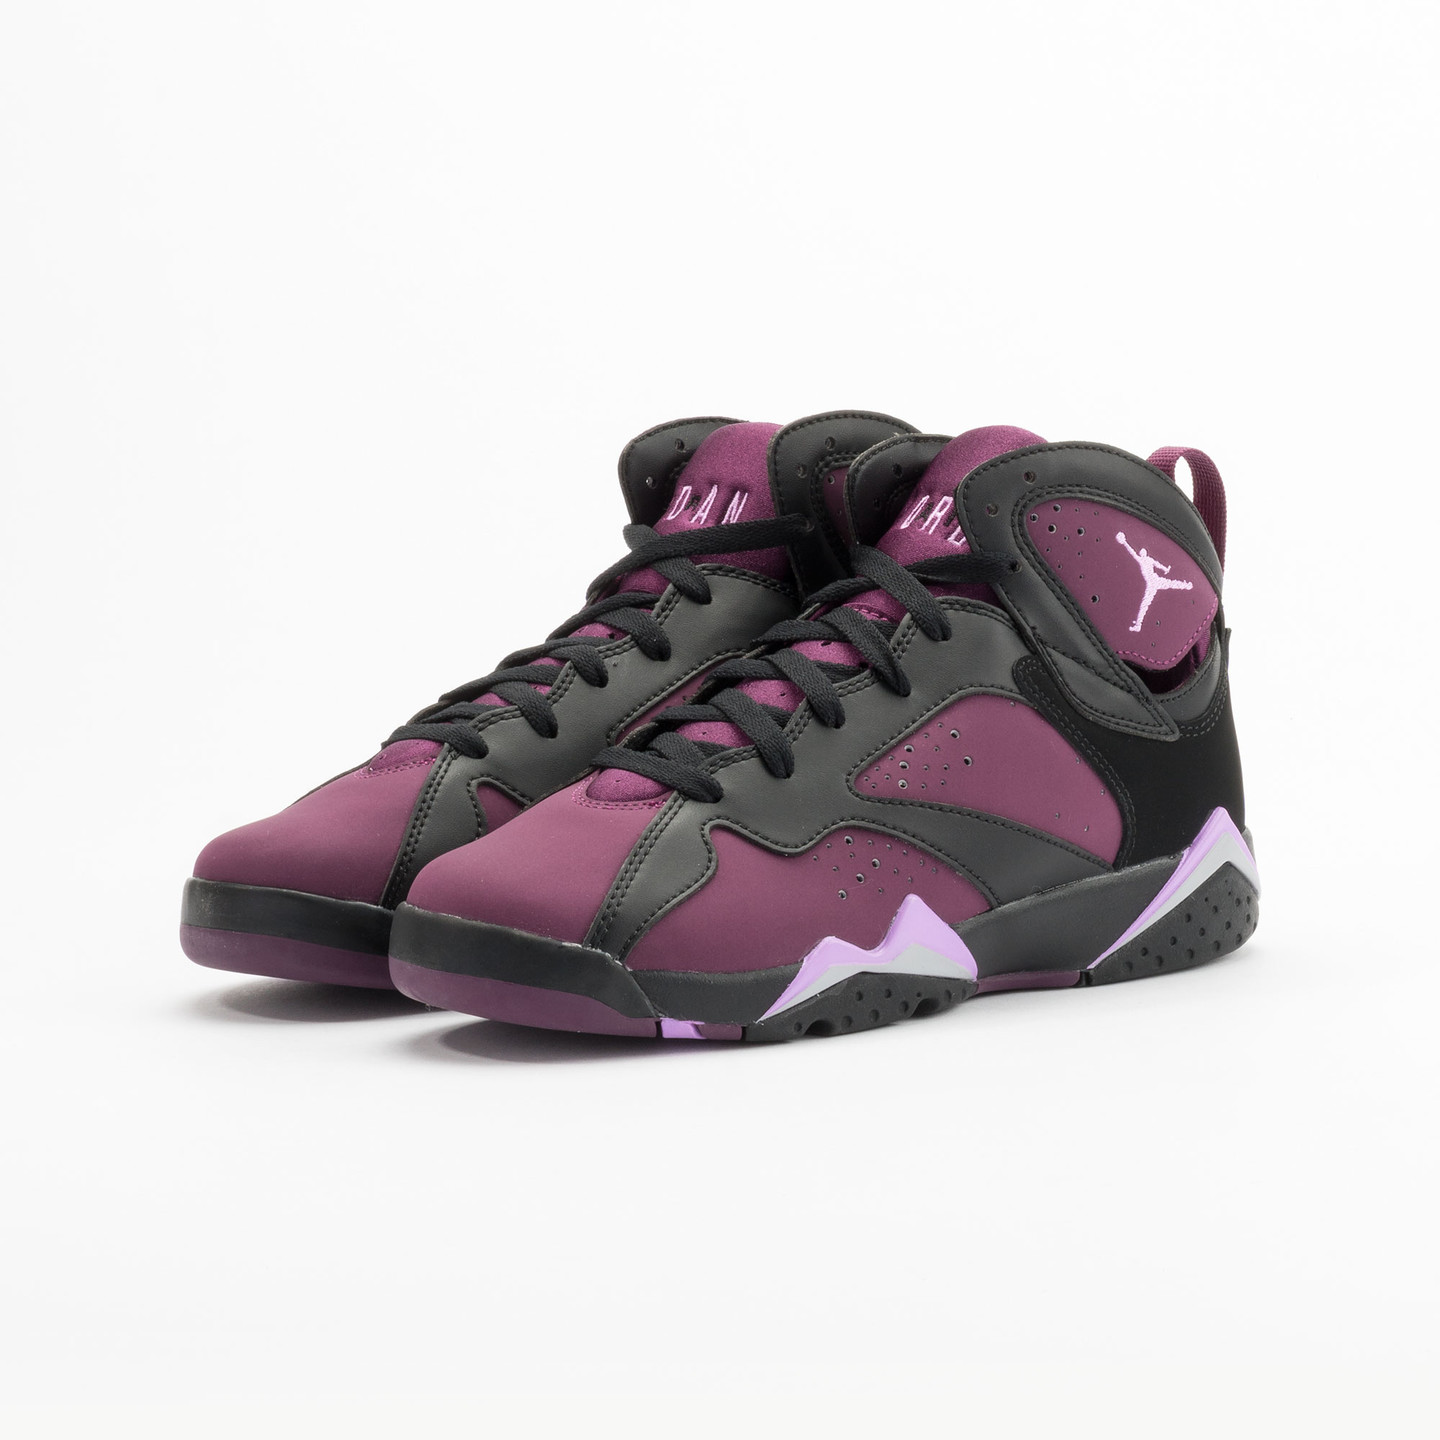 Jordan Air Jordan 7 Retro GG Mulberry / Fuchsia / Black 442960-009-37.5